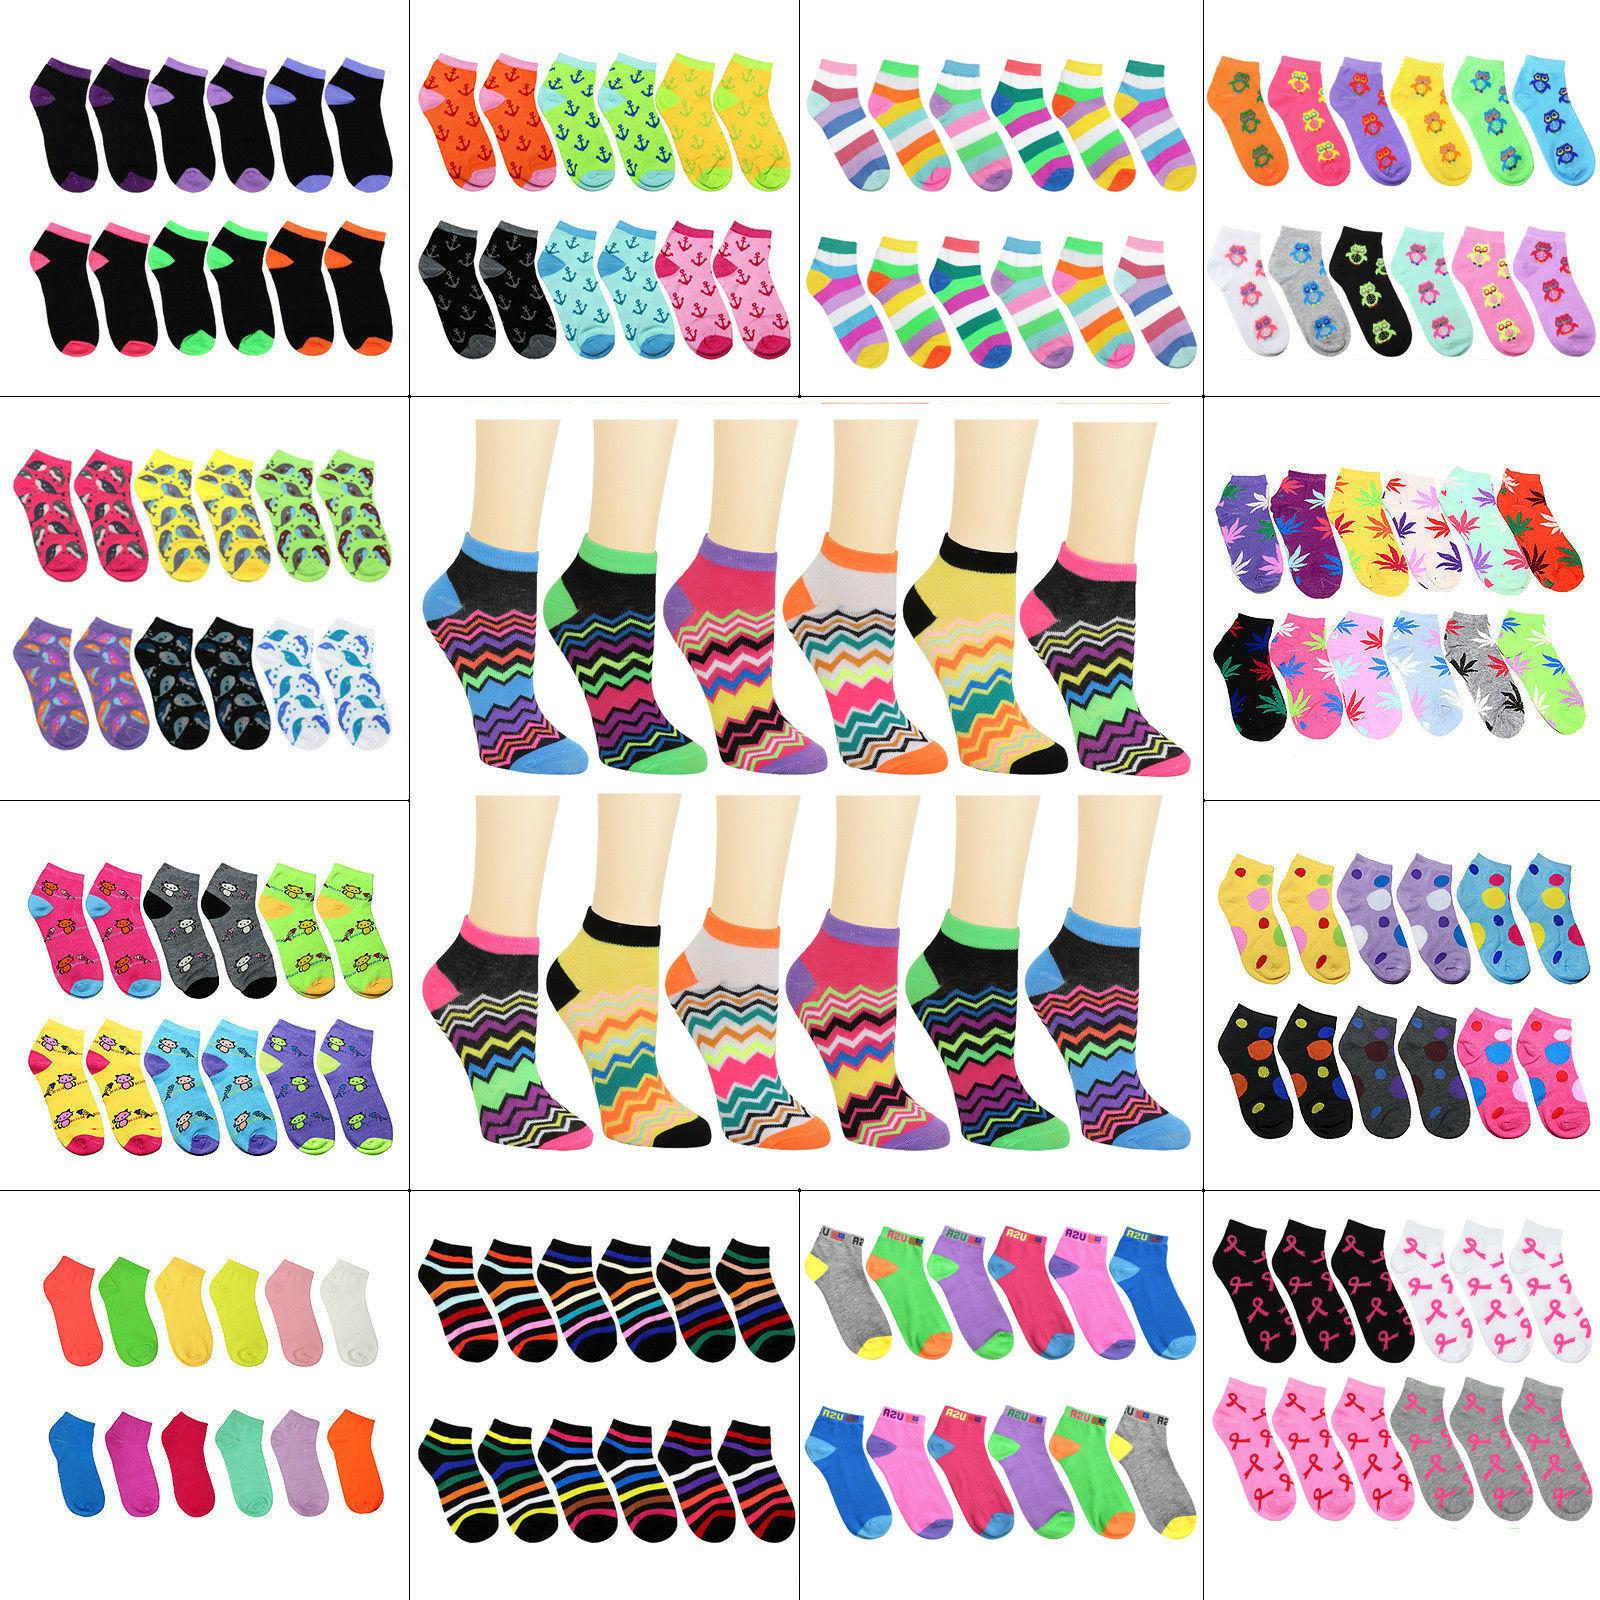 12 pairs assorted color women ankle socks